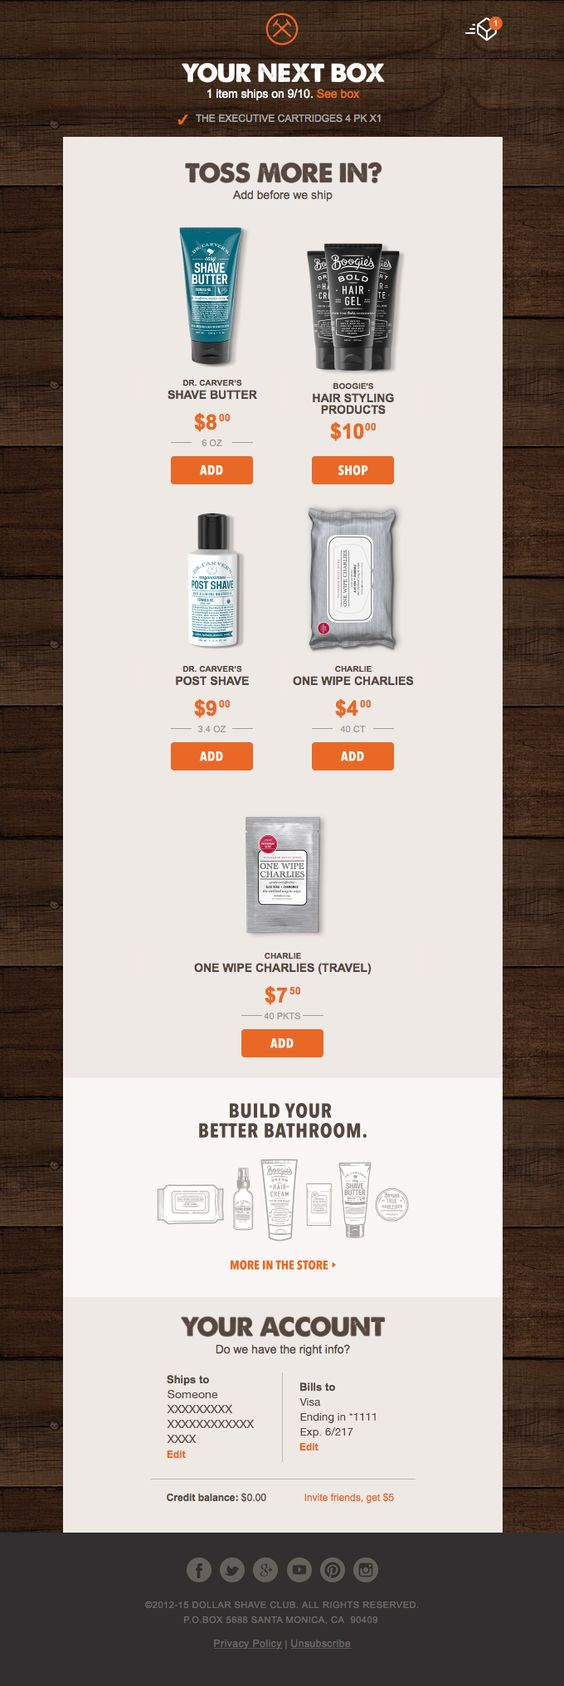 This email from Dollar Shave Club offers personalized product suggestions based on the customer's current order—and even offers them as add-ons.